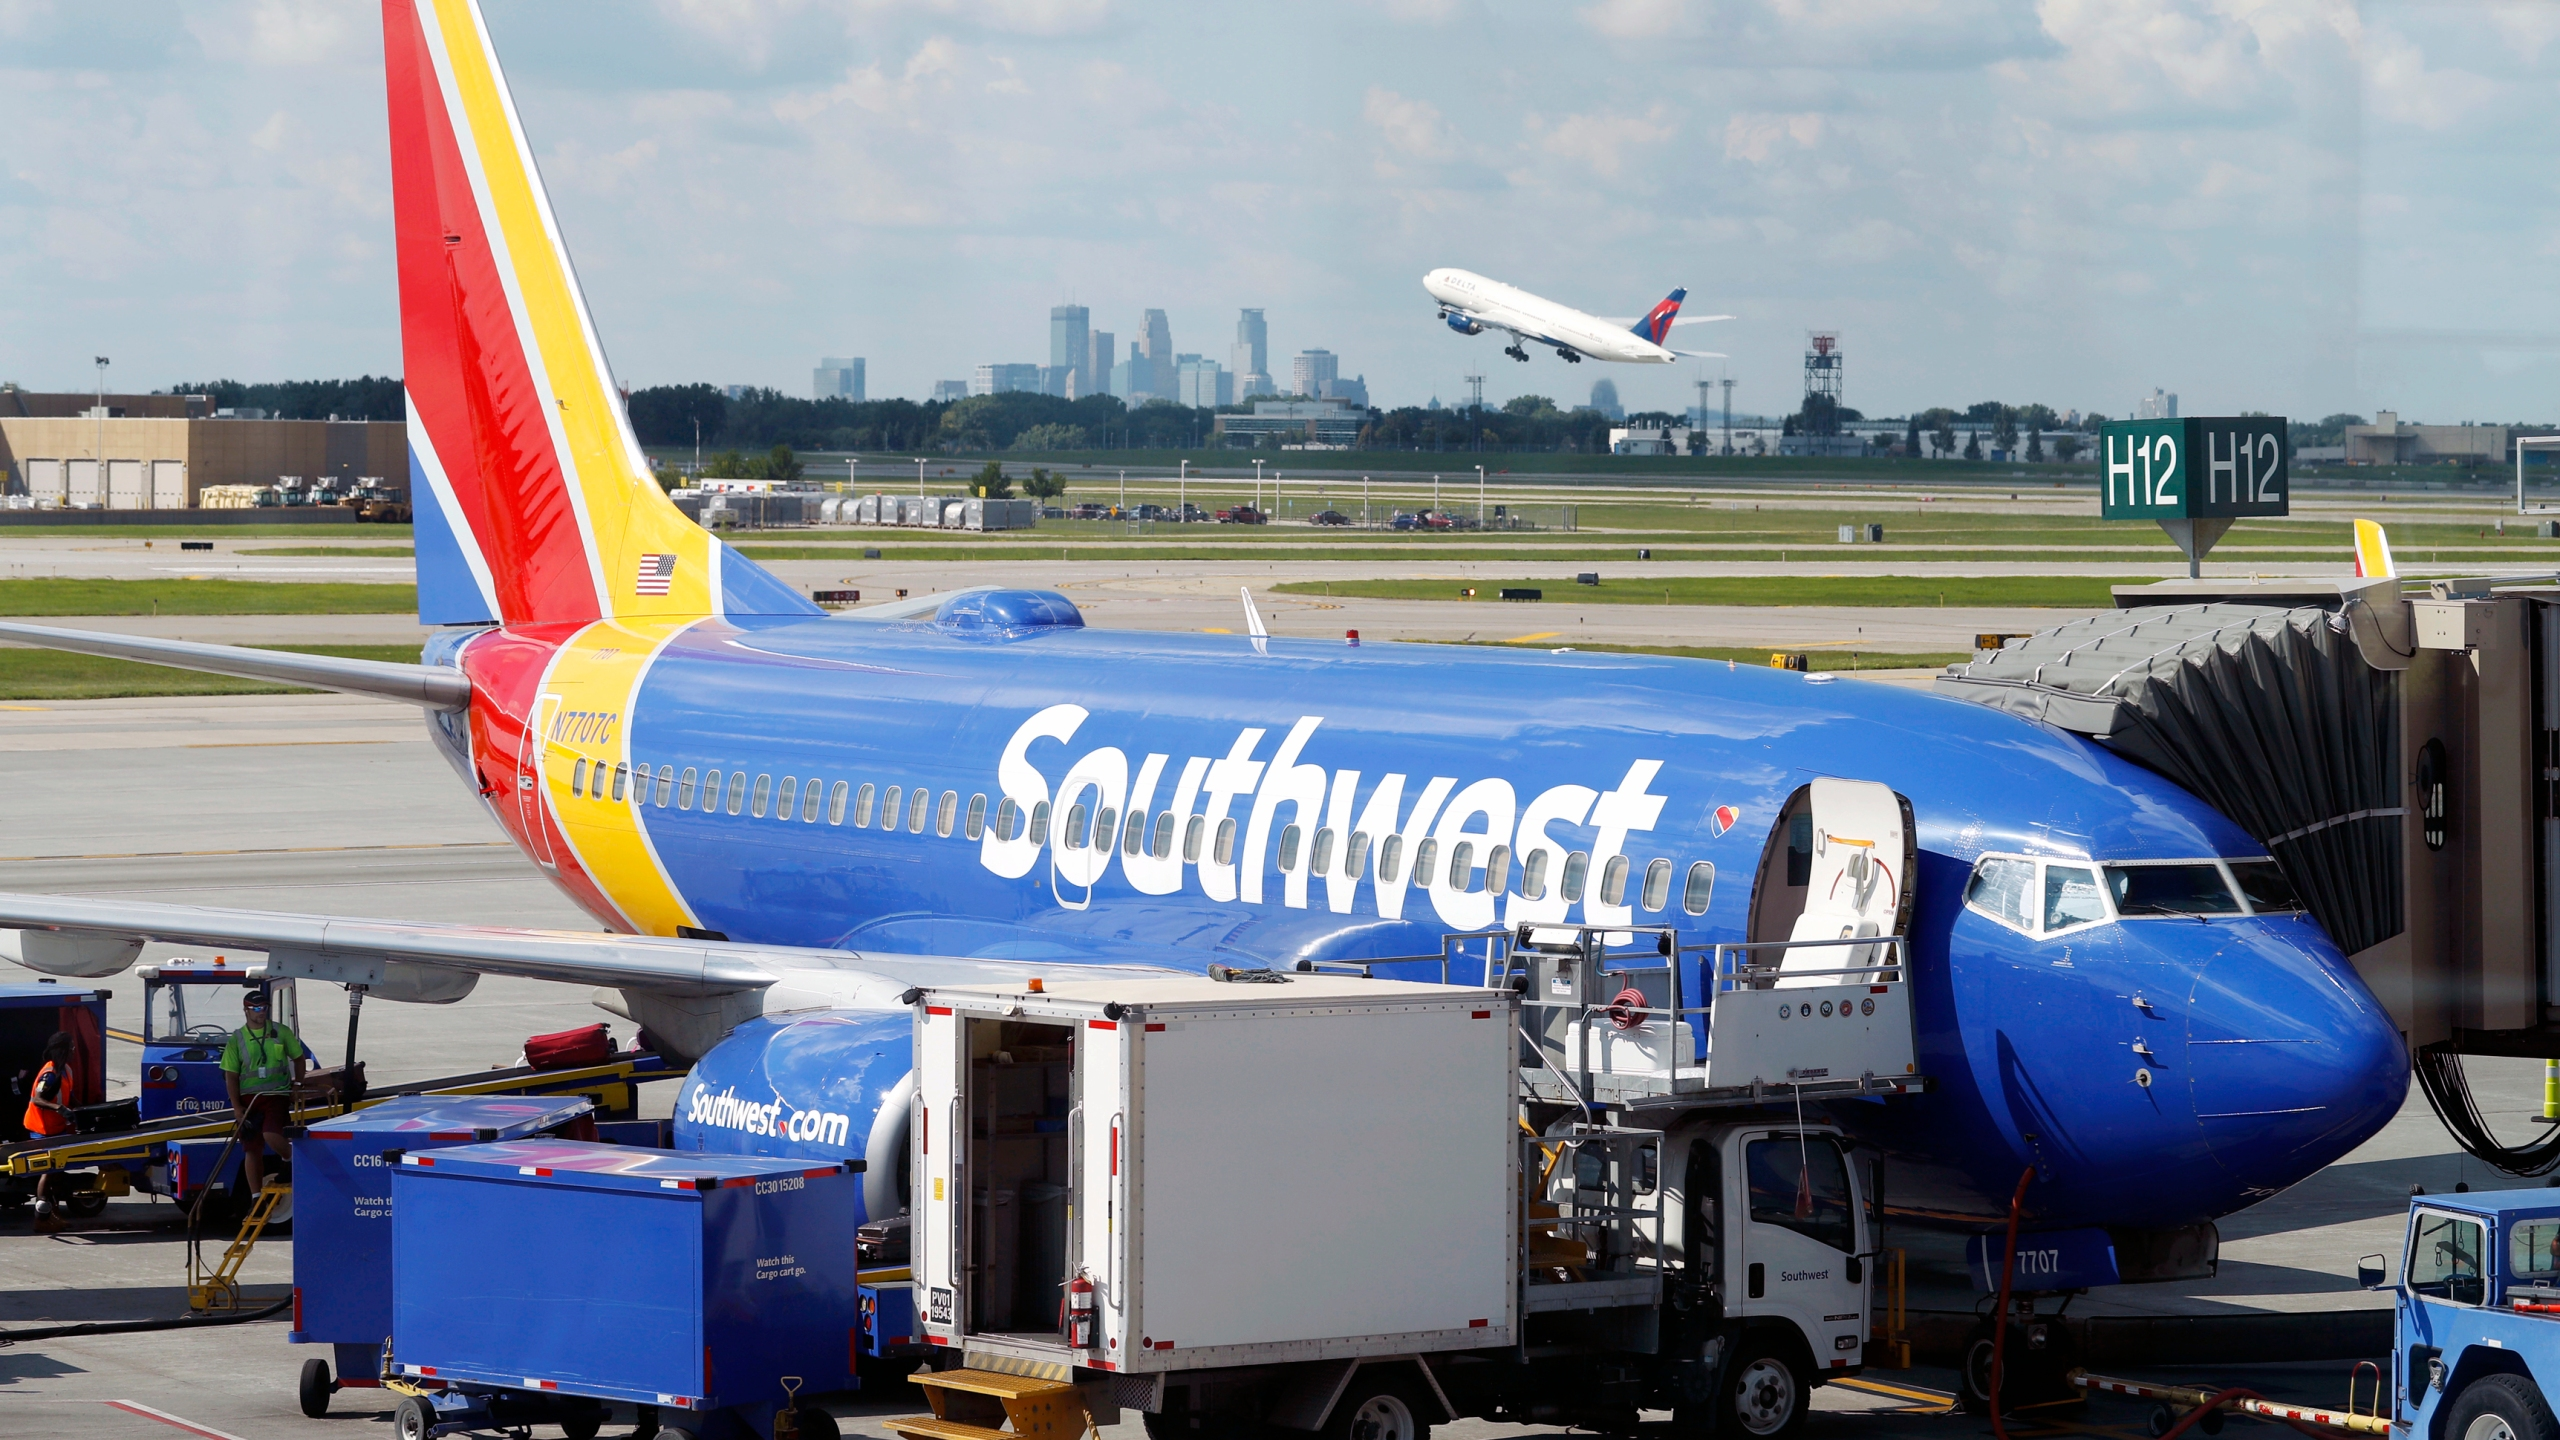 Earns Southwest Airlines_1551304718340